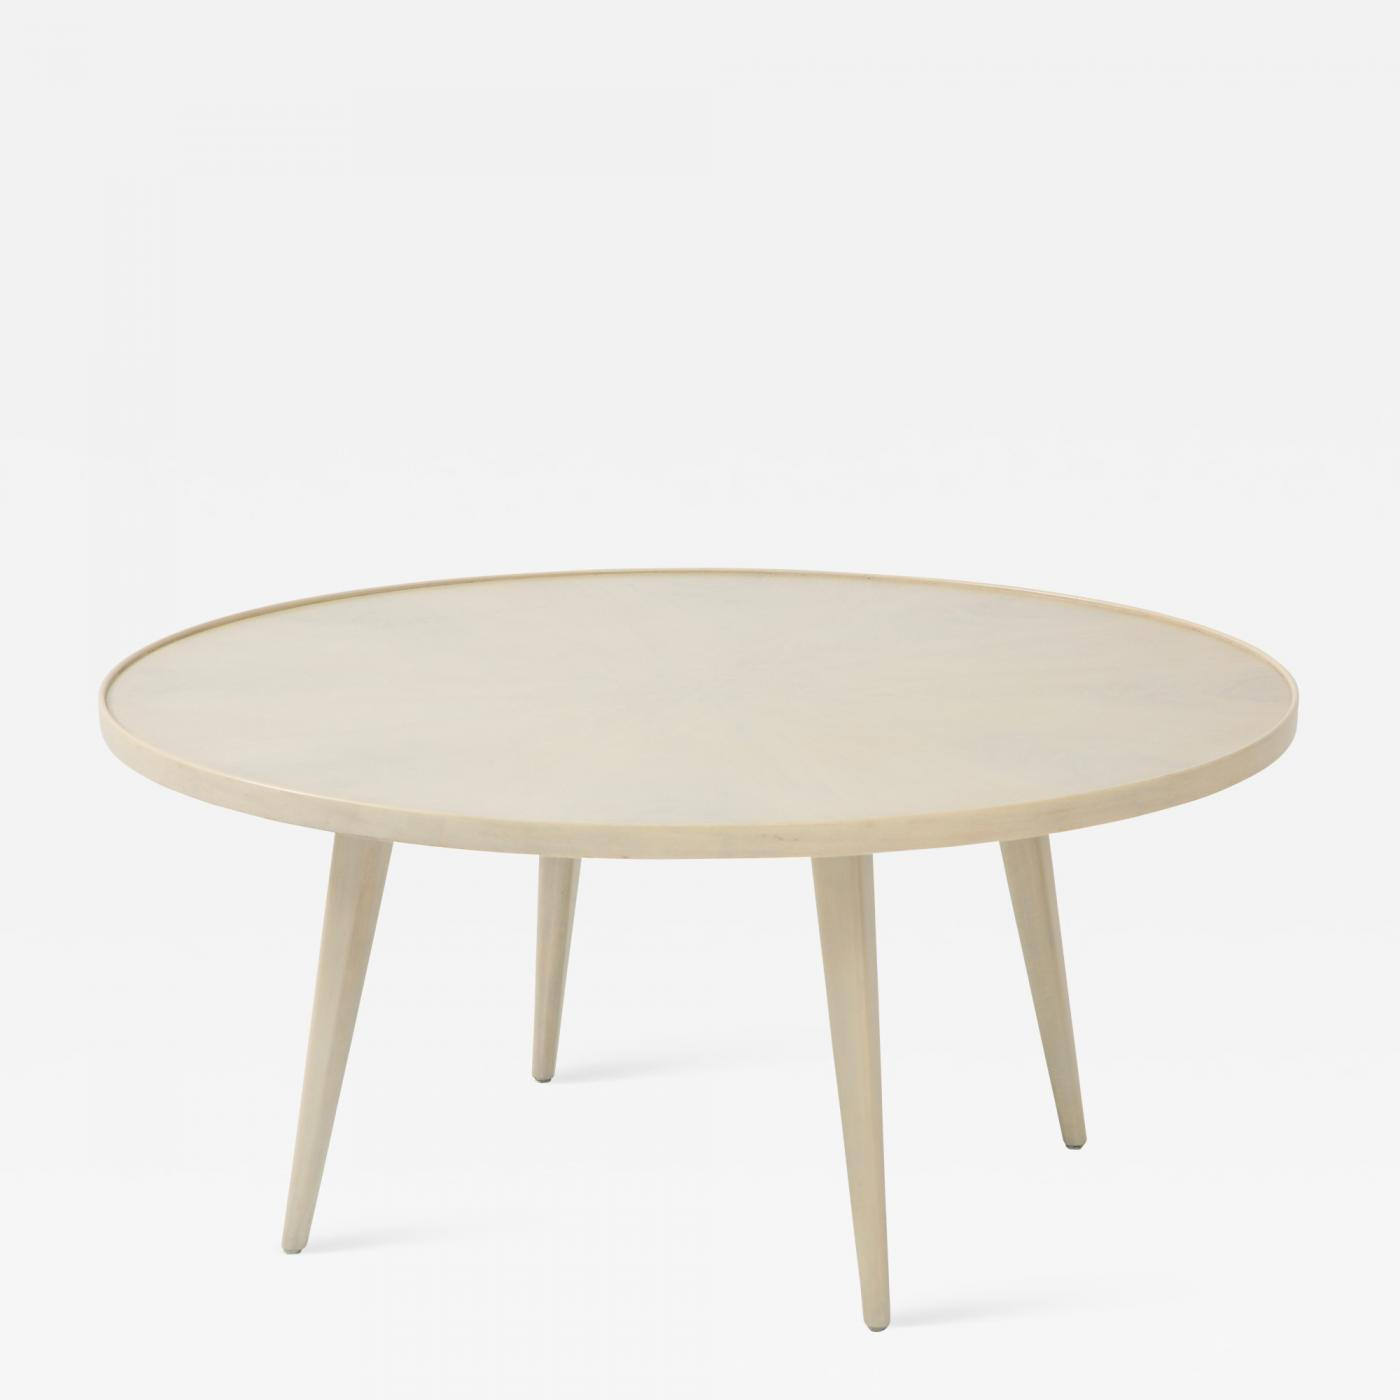 Round Whitewashed Coffee Table